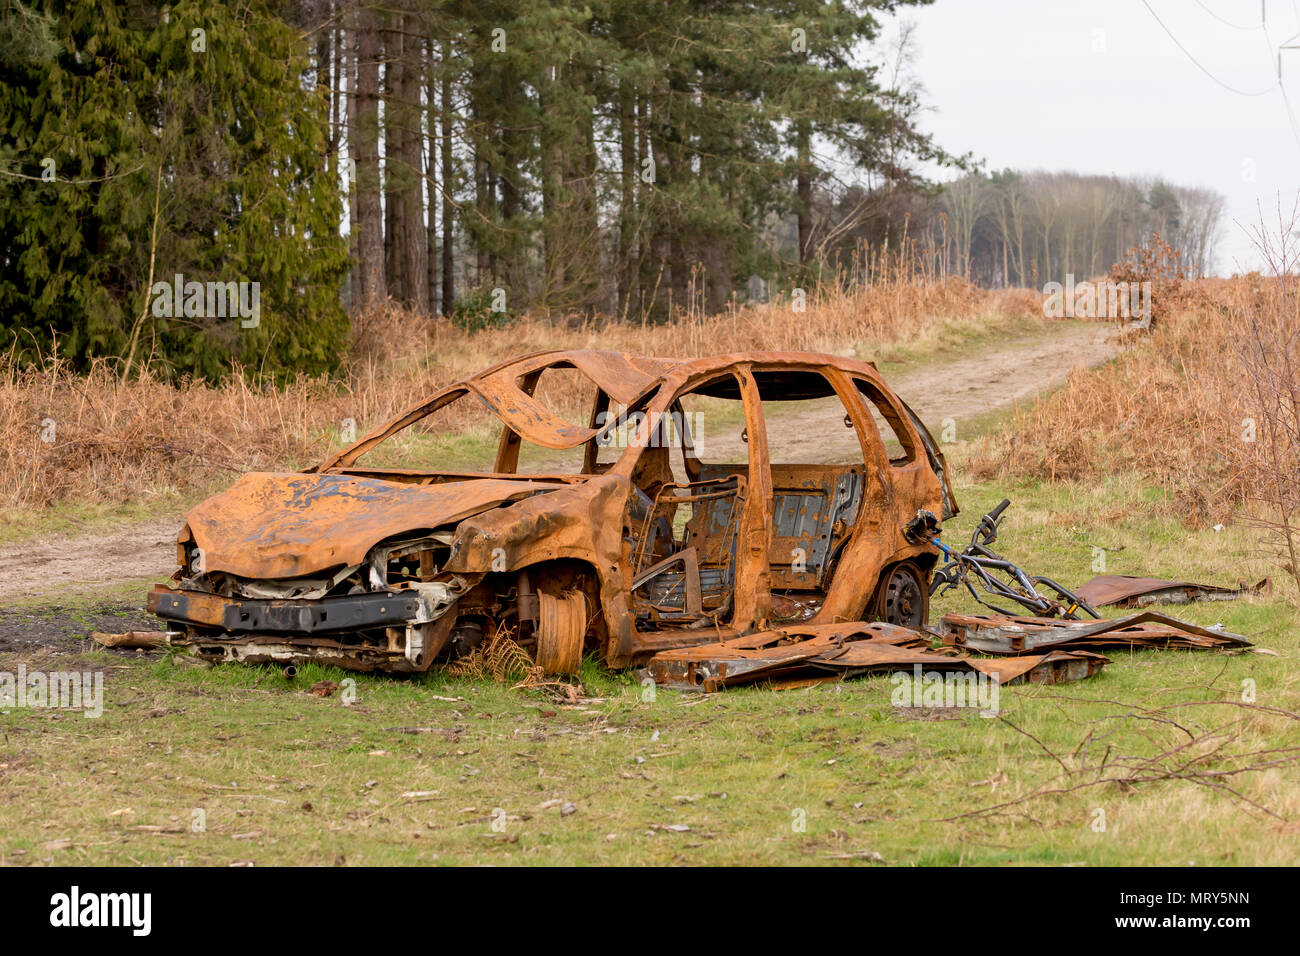 Rusty brown burned out car abandoned at the edge of a forest dirt track, only the metal parts remain - Stock Image